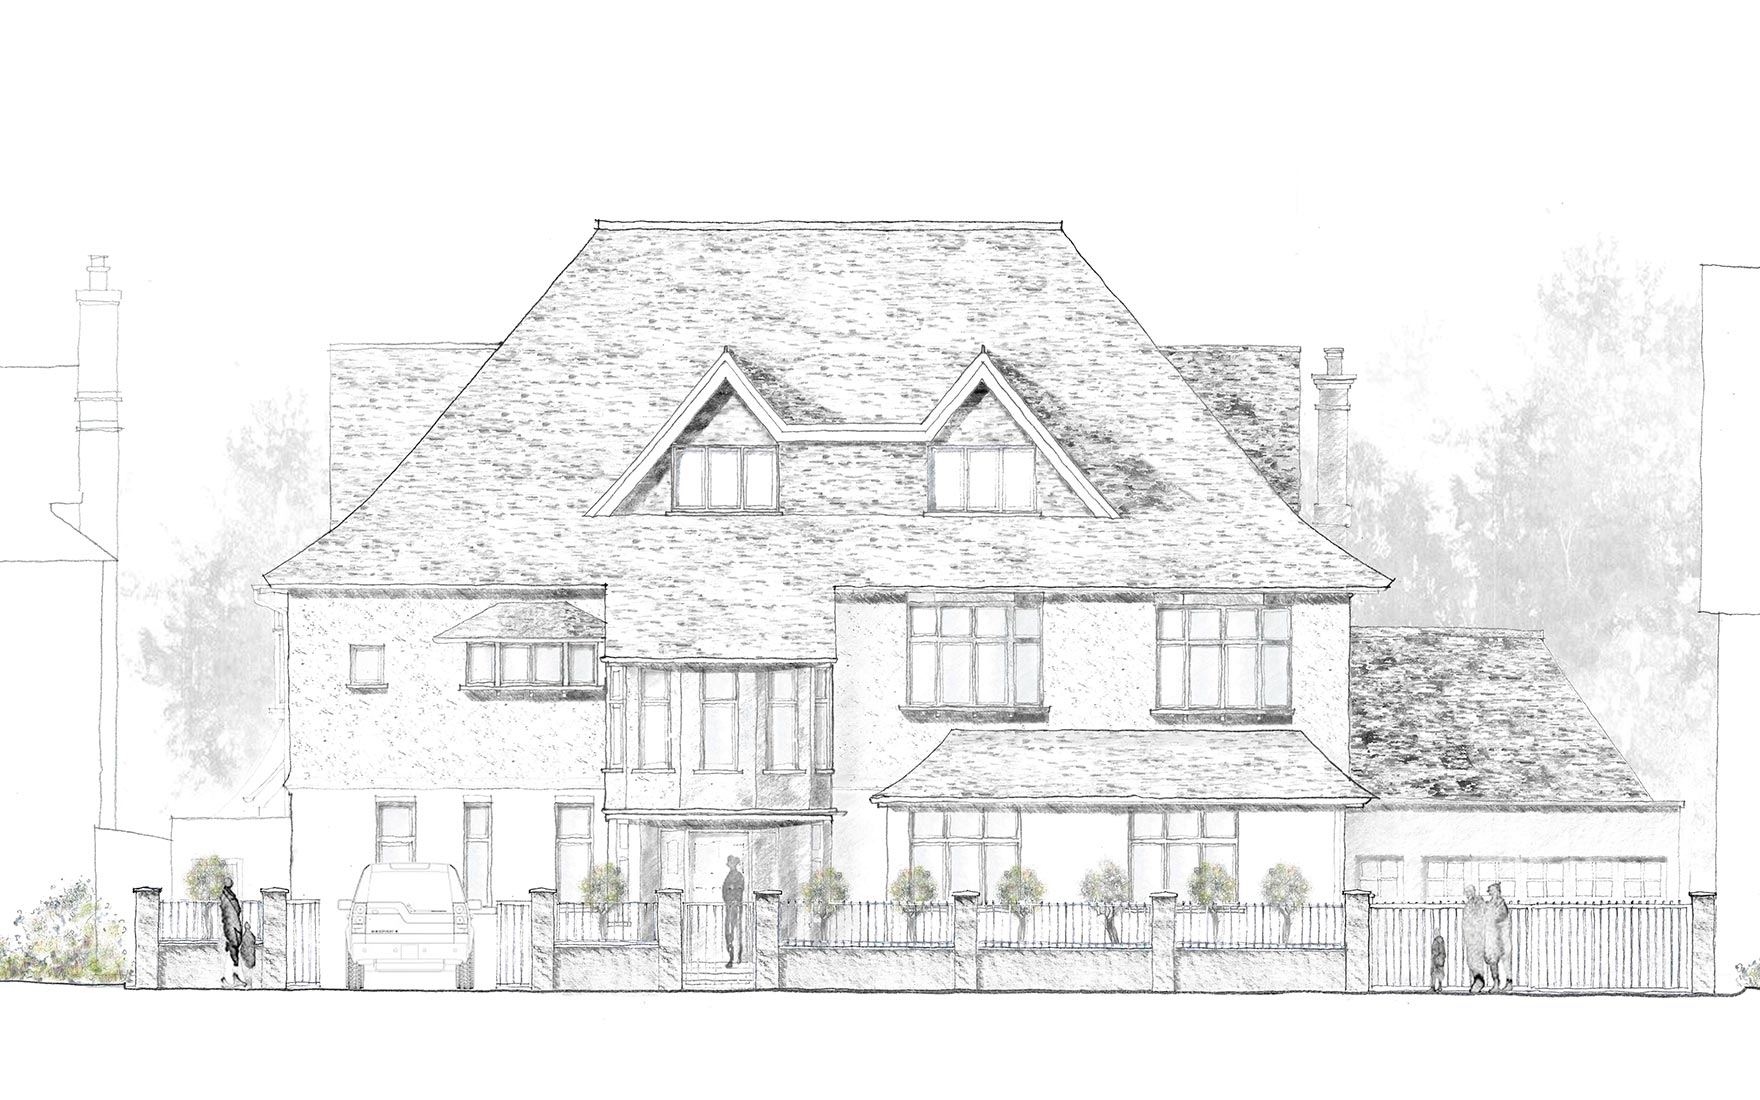 Wimbledon sketch showing the front elevation